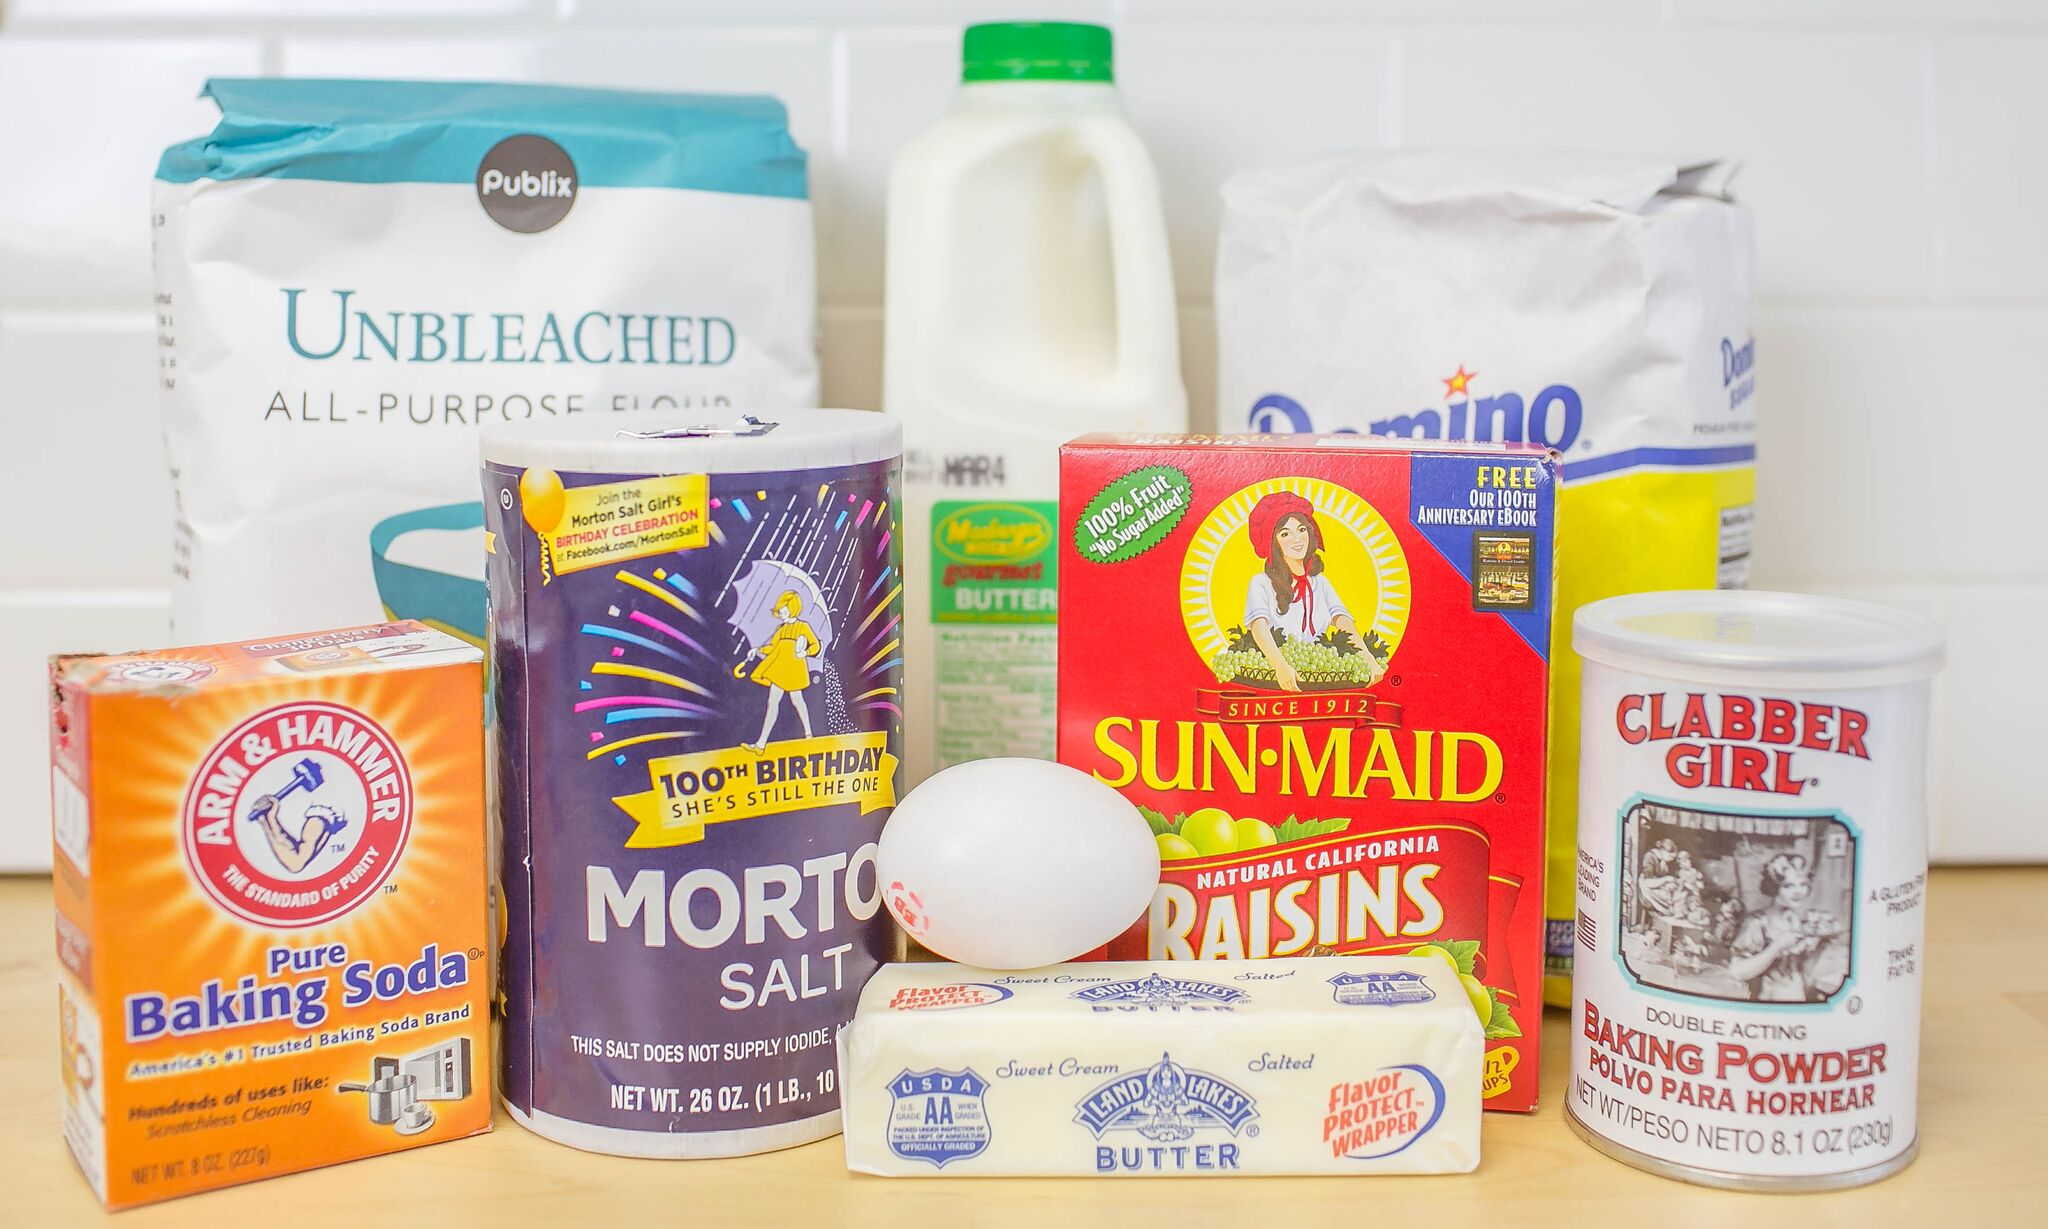 Ready to make Irish soda bread? Here are the ingredients: flour, buttermilk, sugar, salt, raisins, eggs, butter, baking powder and soda.